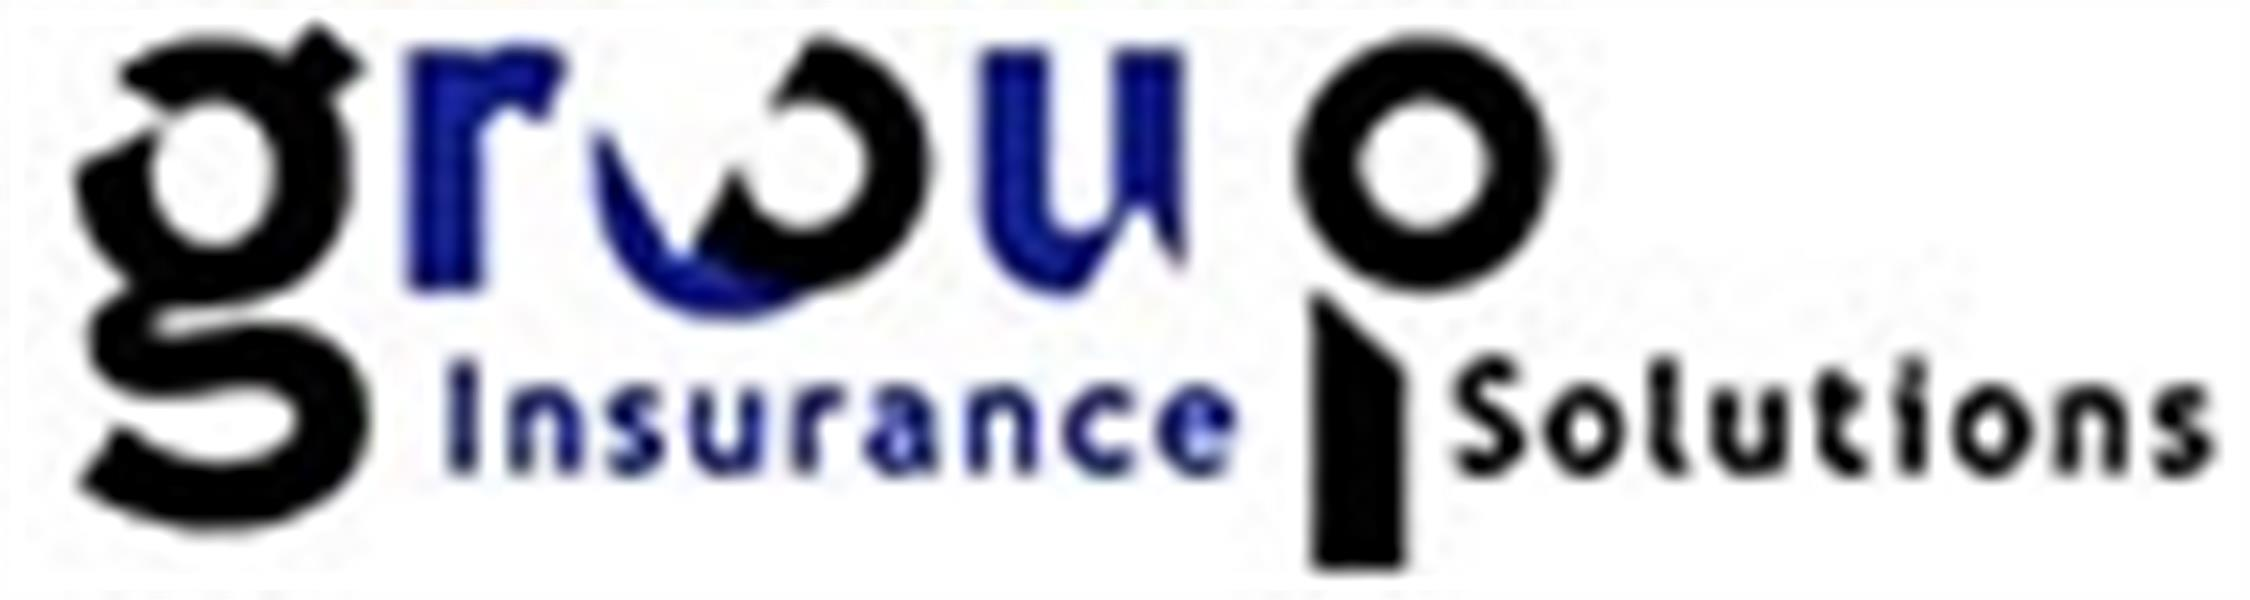 Group Insurance Solutions Inc.